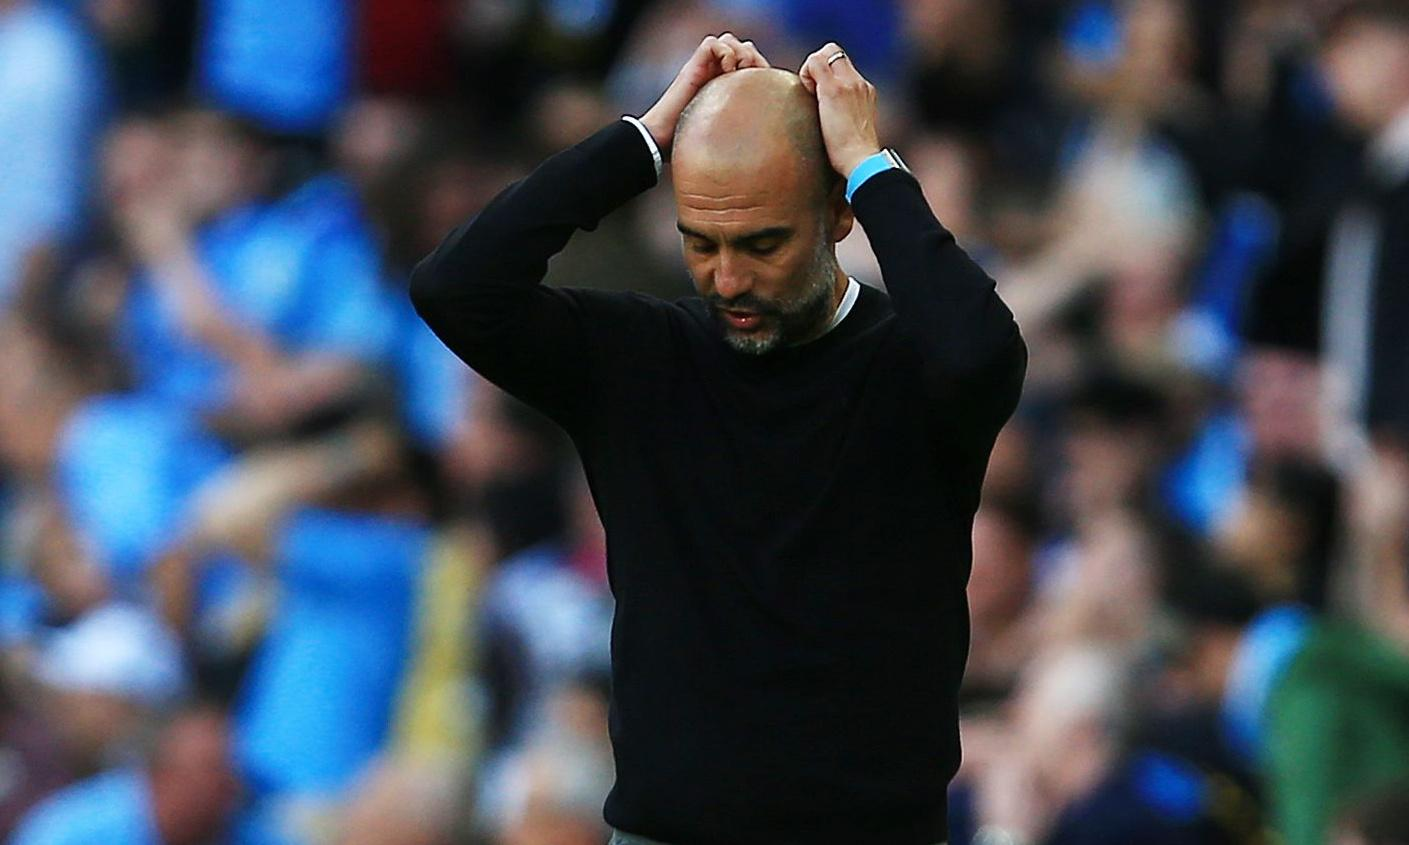 Pep Guardiola's quest for control at Manchester City undermined by VAR